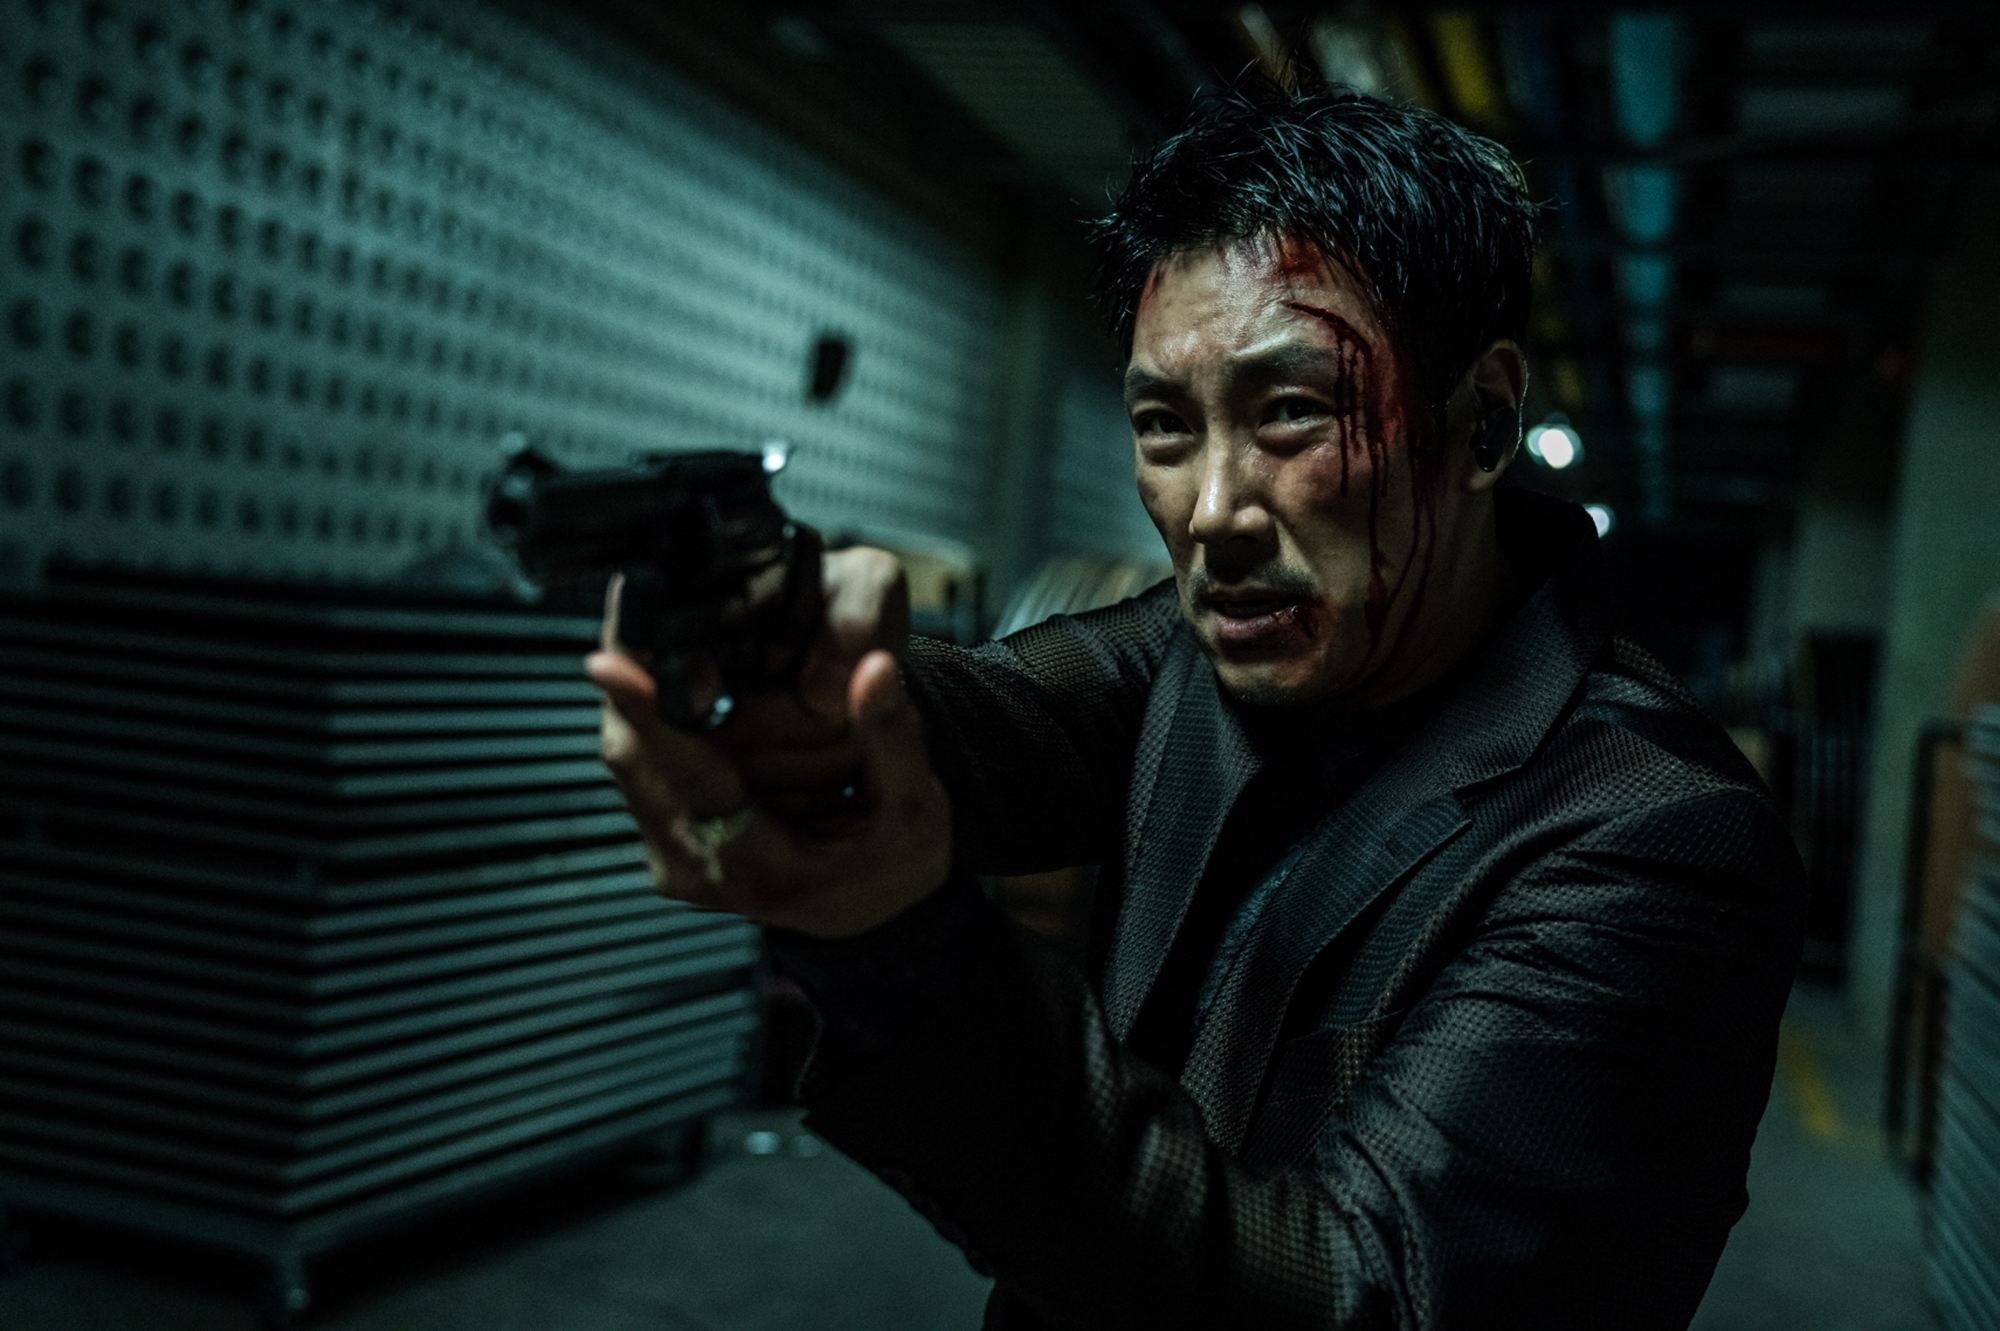 johnnie to, believer movie